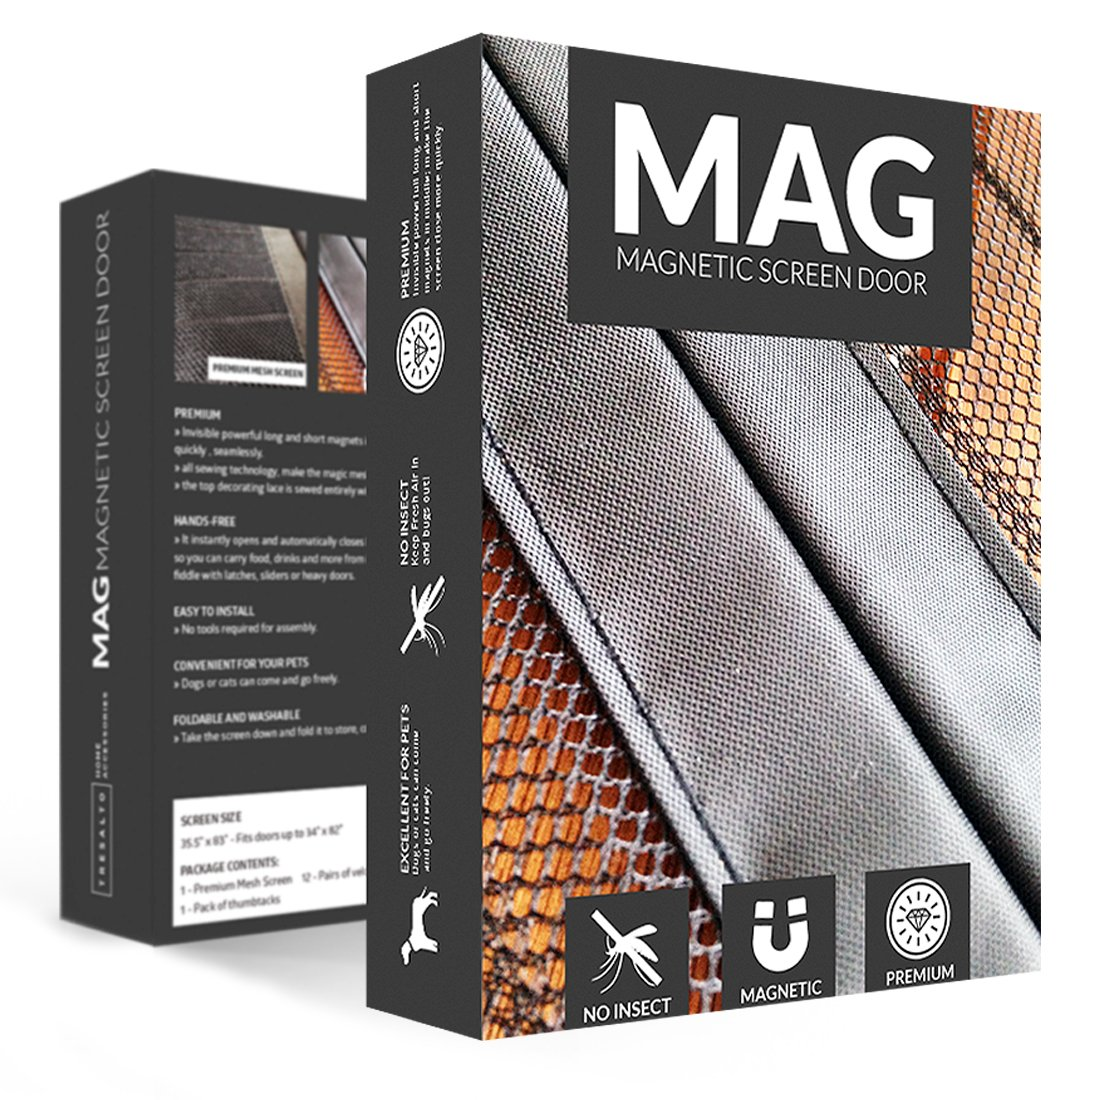 Amazon.com: MAG Magnetic Mesh Screen Door, 34 X 82 Inches   Bug Off  Curtain, Black: Home Improvement